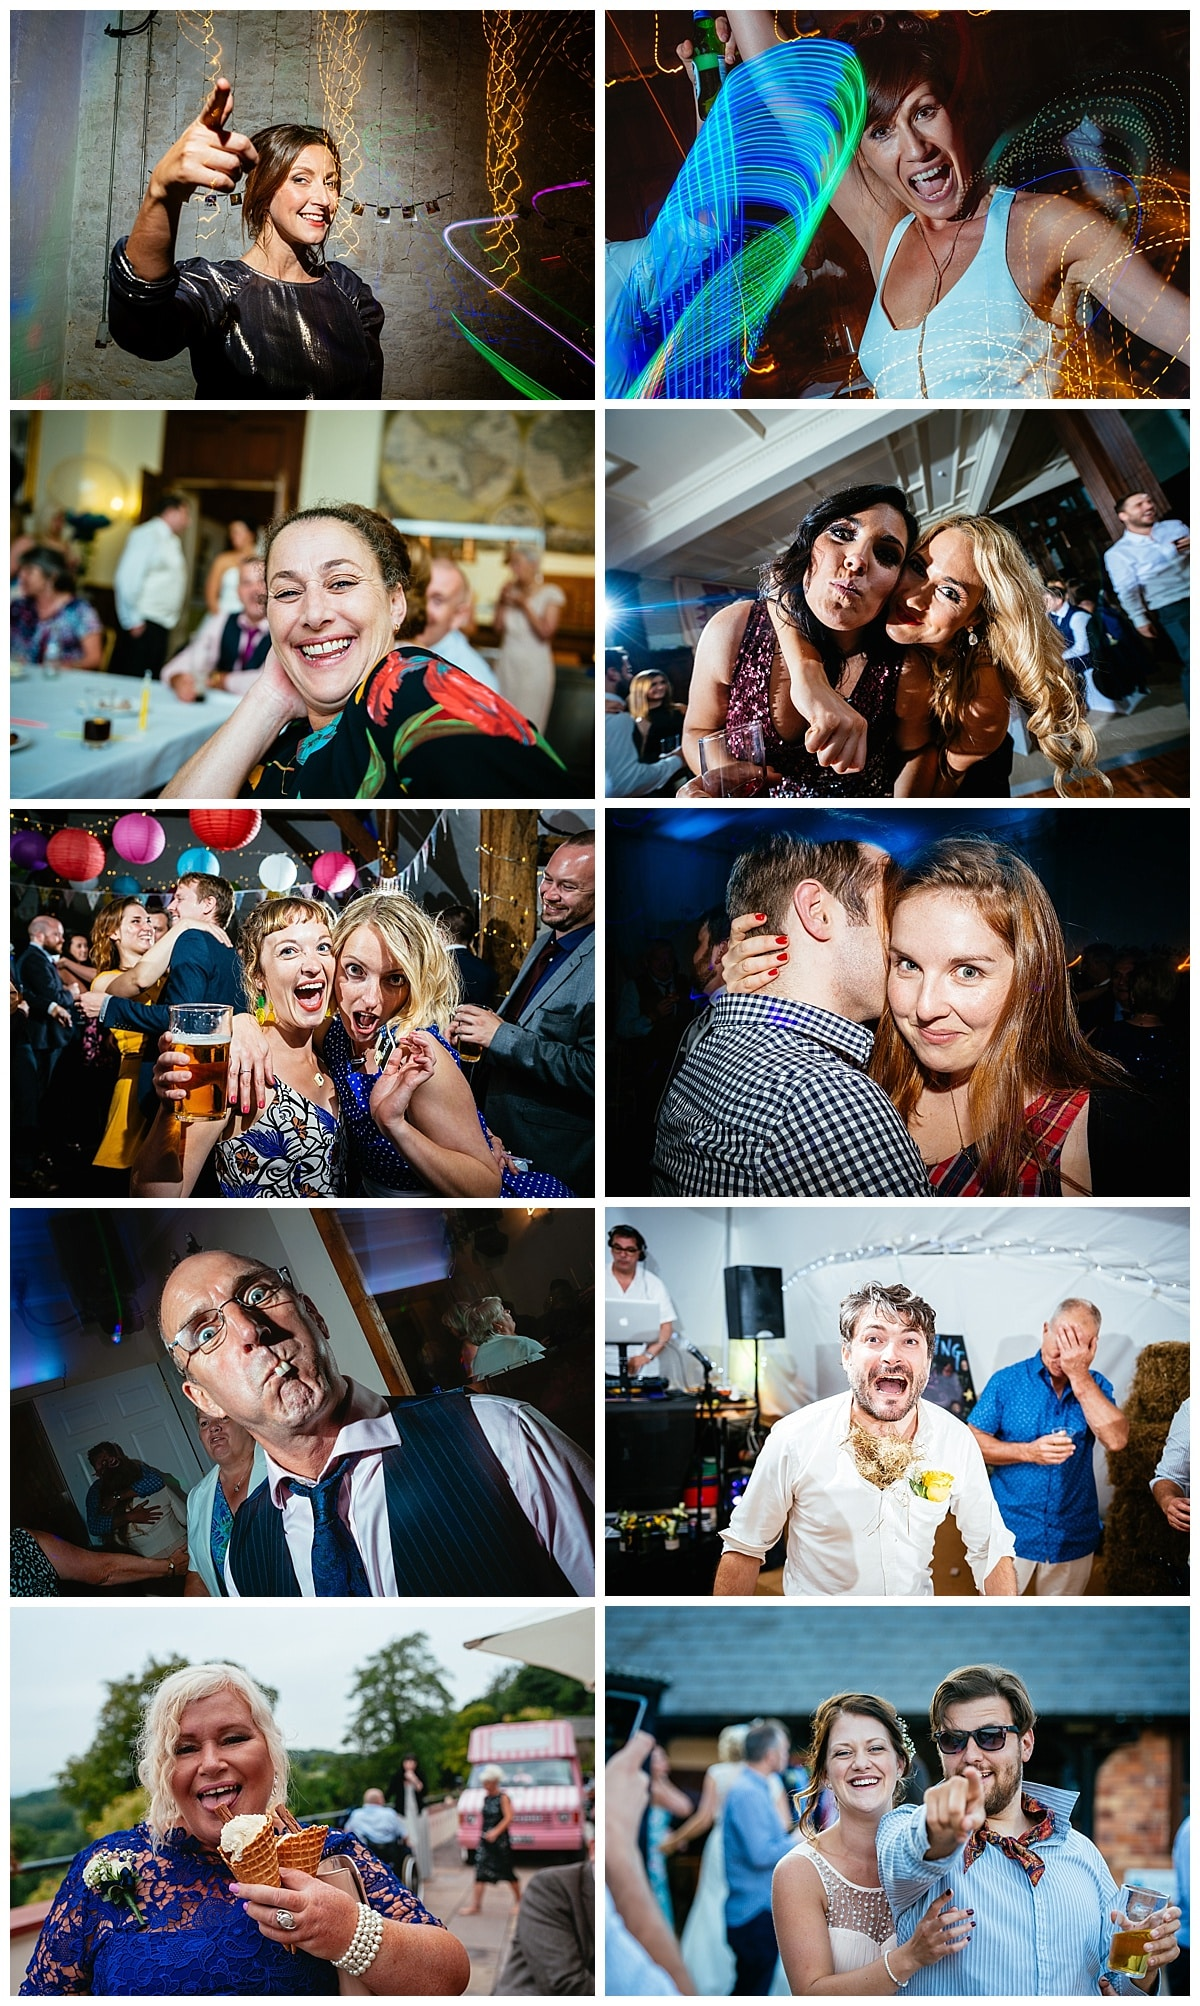 Fun Wedding Photo of Guests Cardiff Wales Bristol Swansea Party Fun Quirky Alternative Photographer